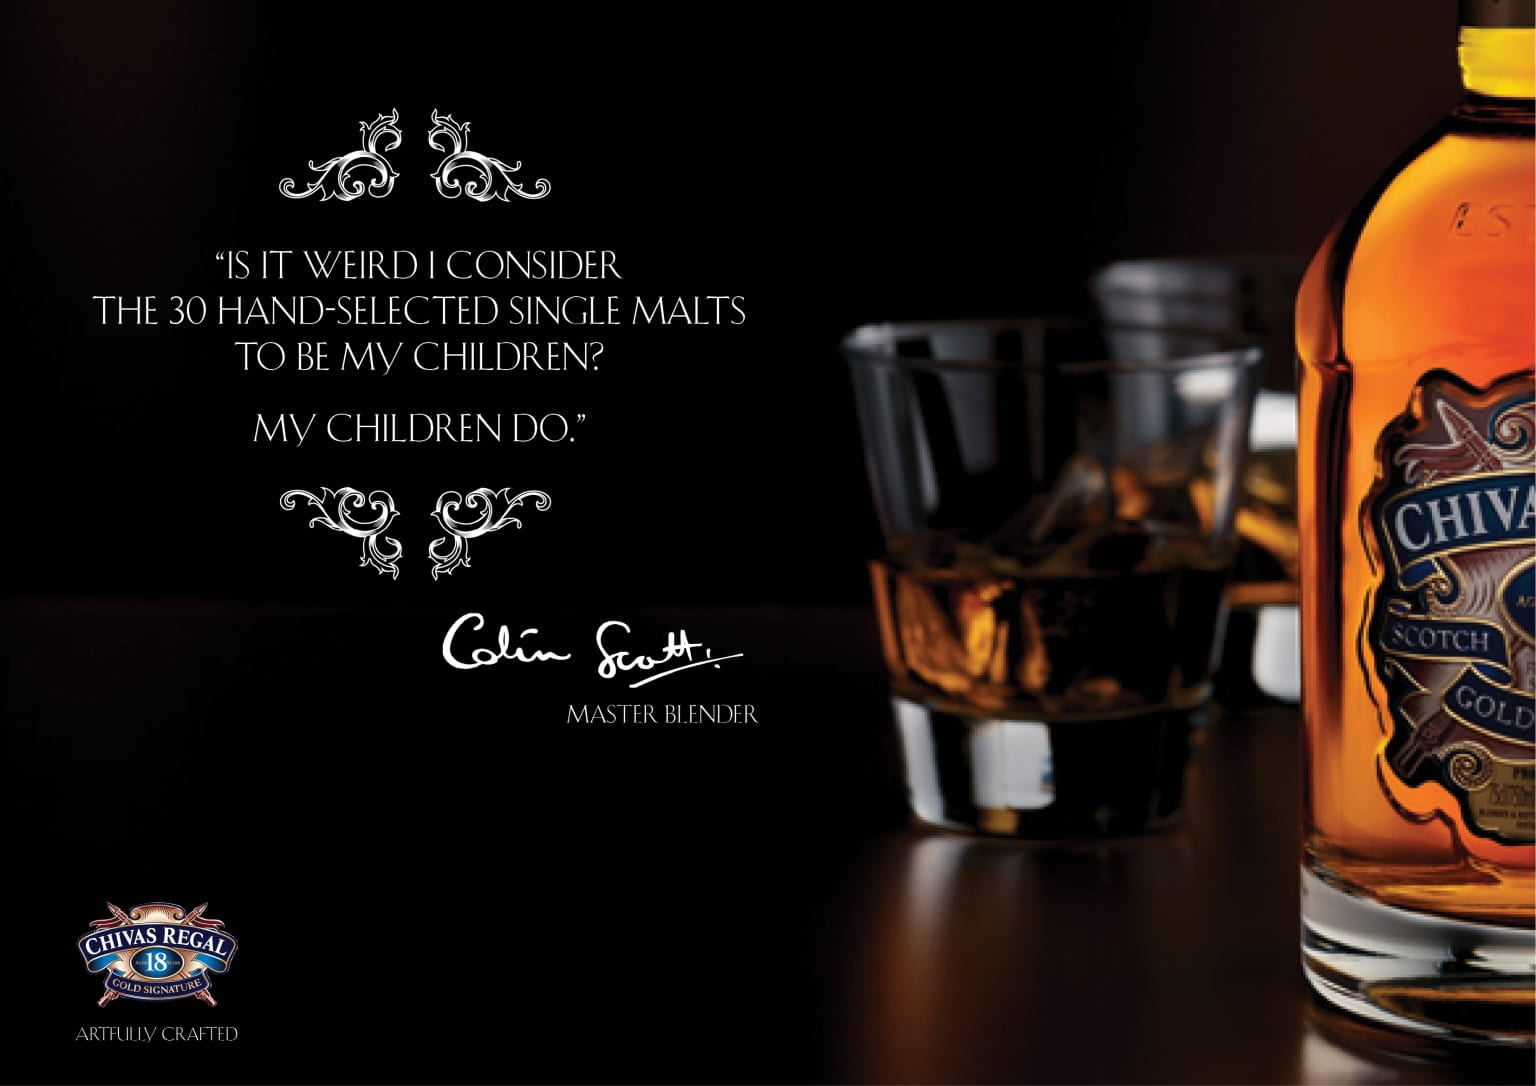 Chivas Regal 18 year Scotch